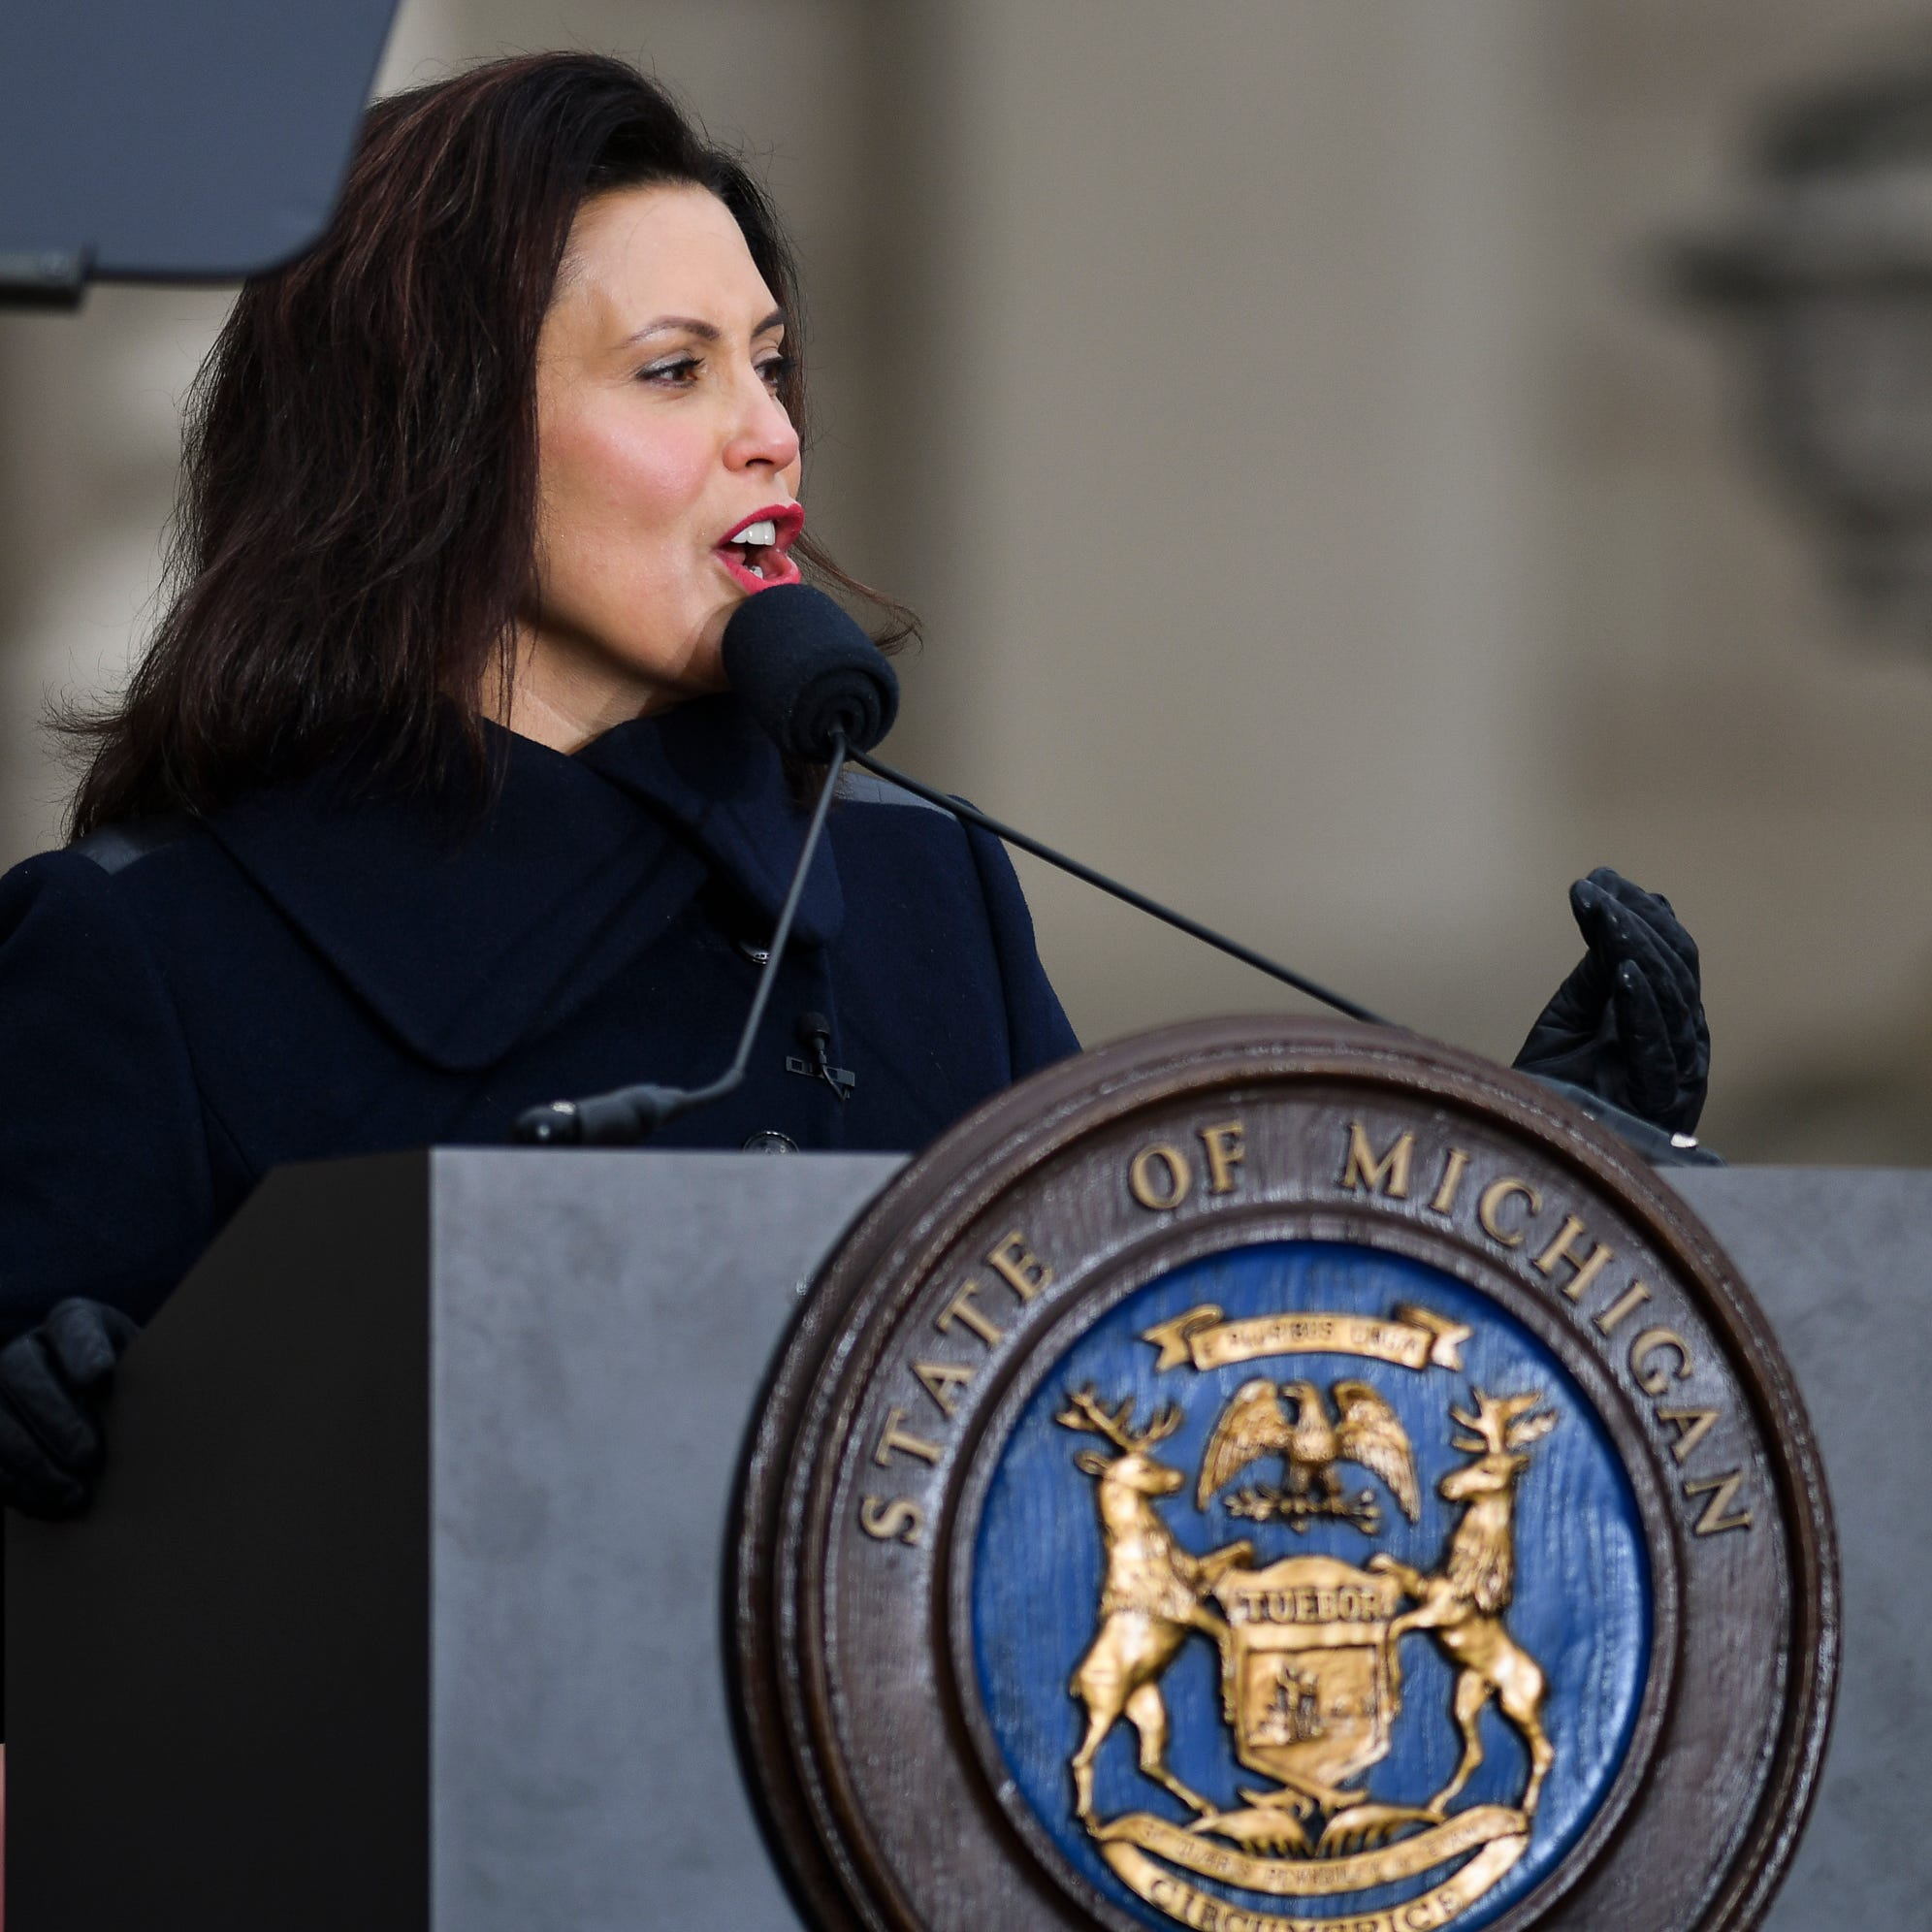 Editorial: Newly elected Governor Gretchen Whitmer has her work cut out for her